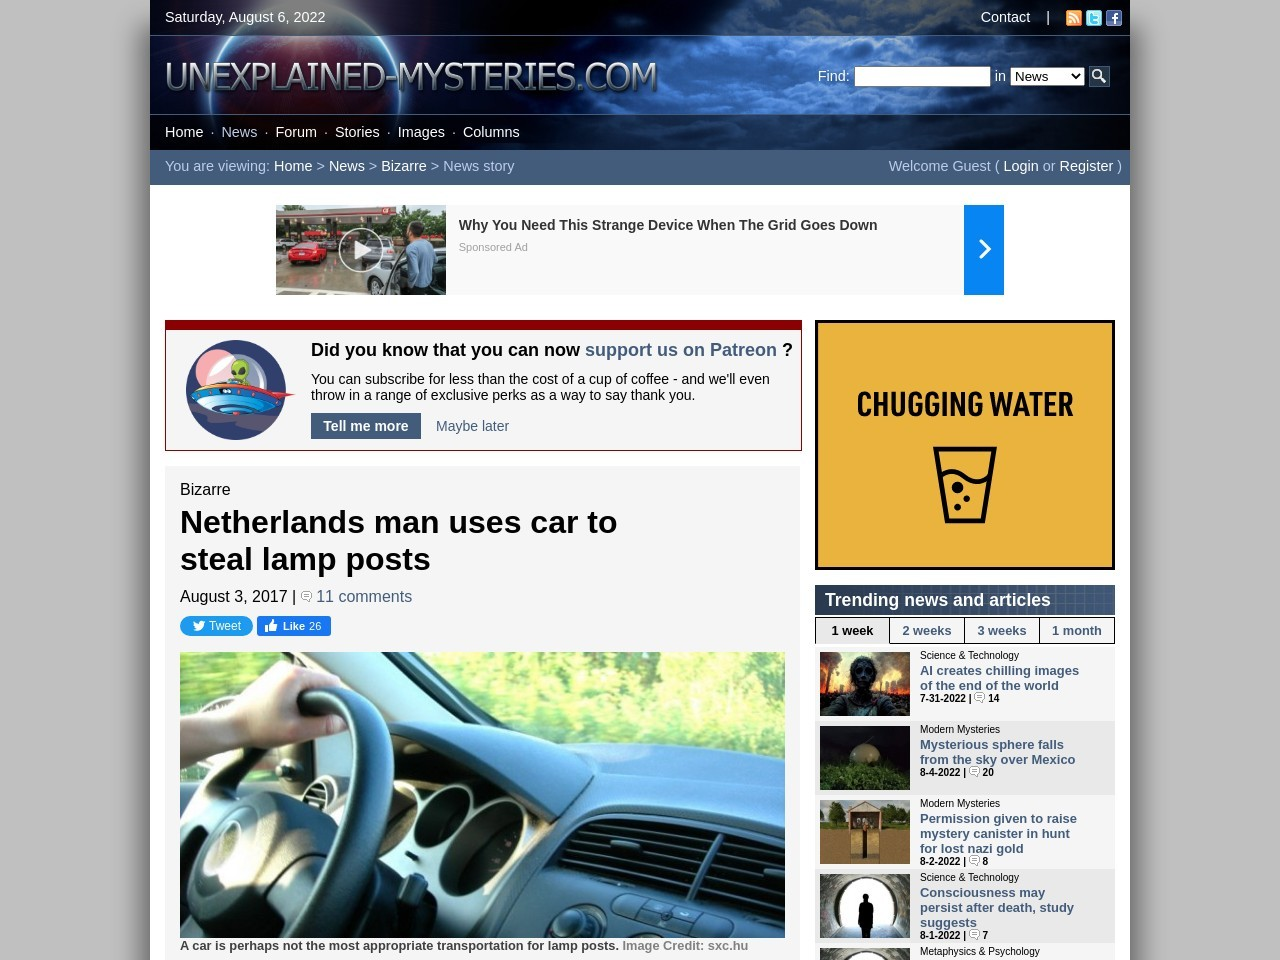 Netherlands man uses car to steal lamp posts